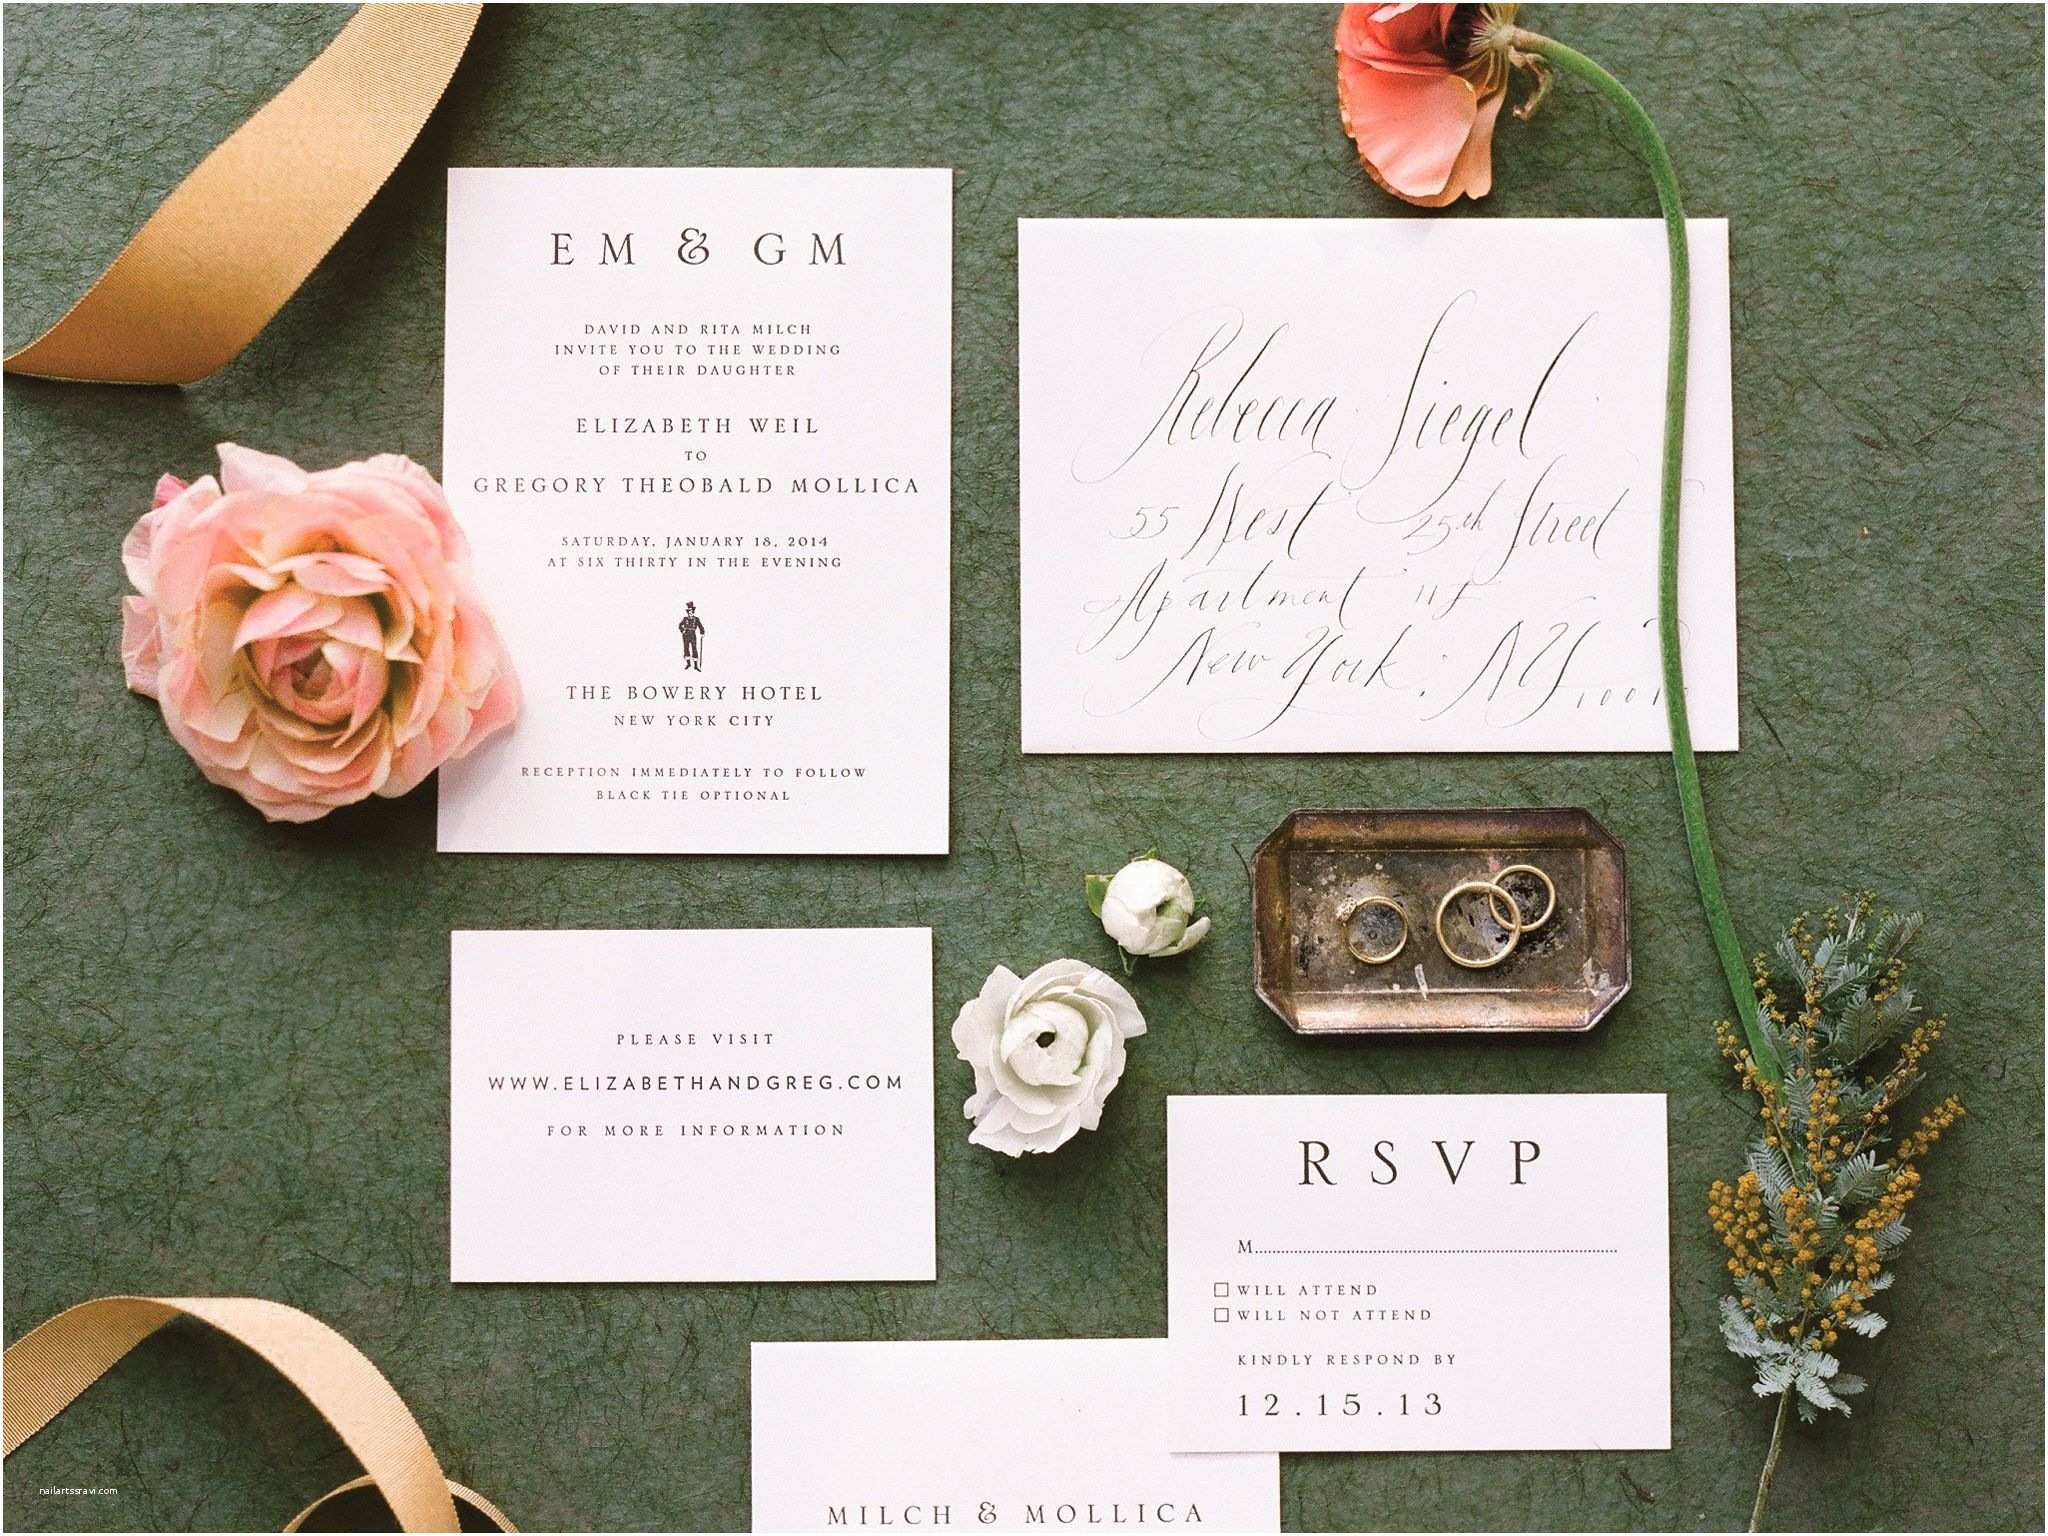 What Do You Say On A Wedding Invitation top 10 Wedding Invitation Etiquette Questions